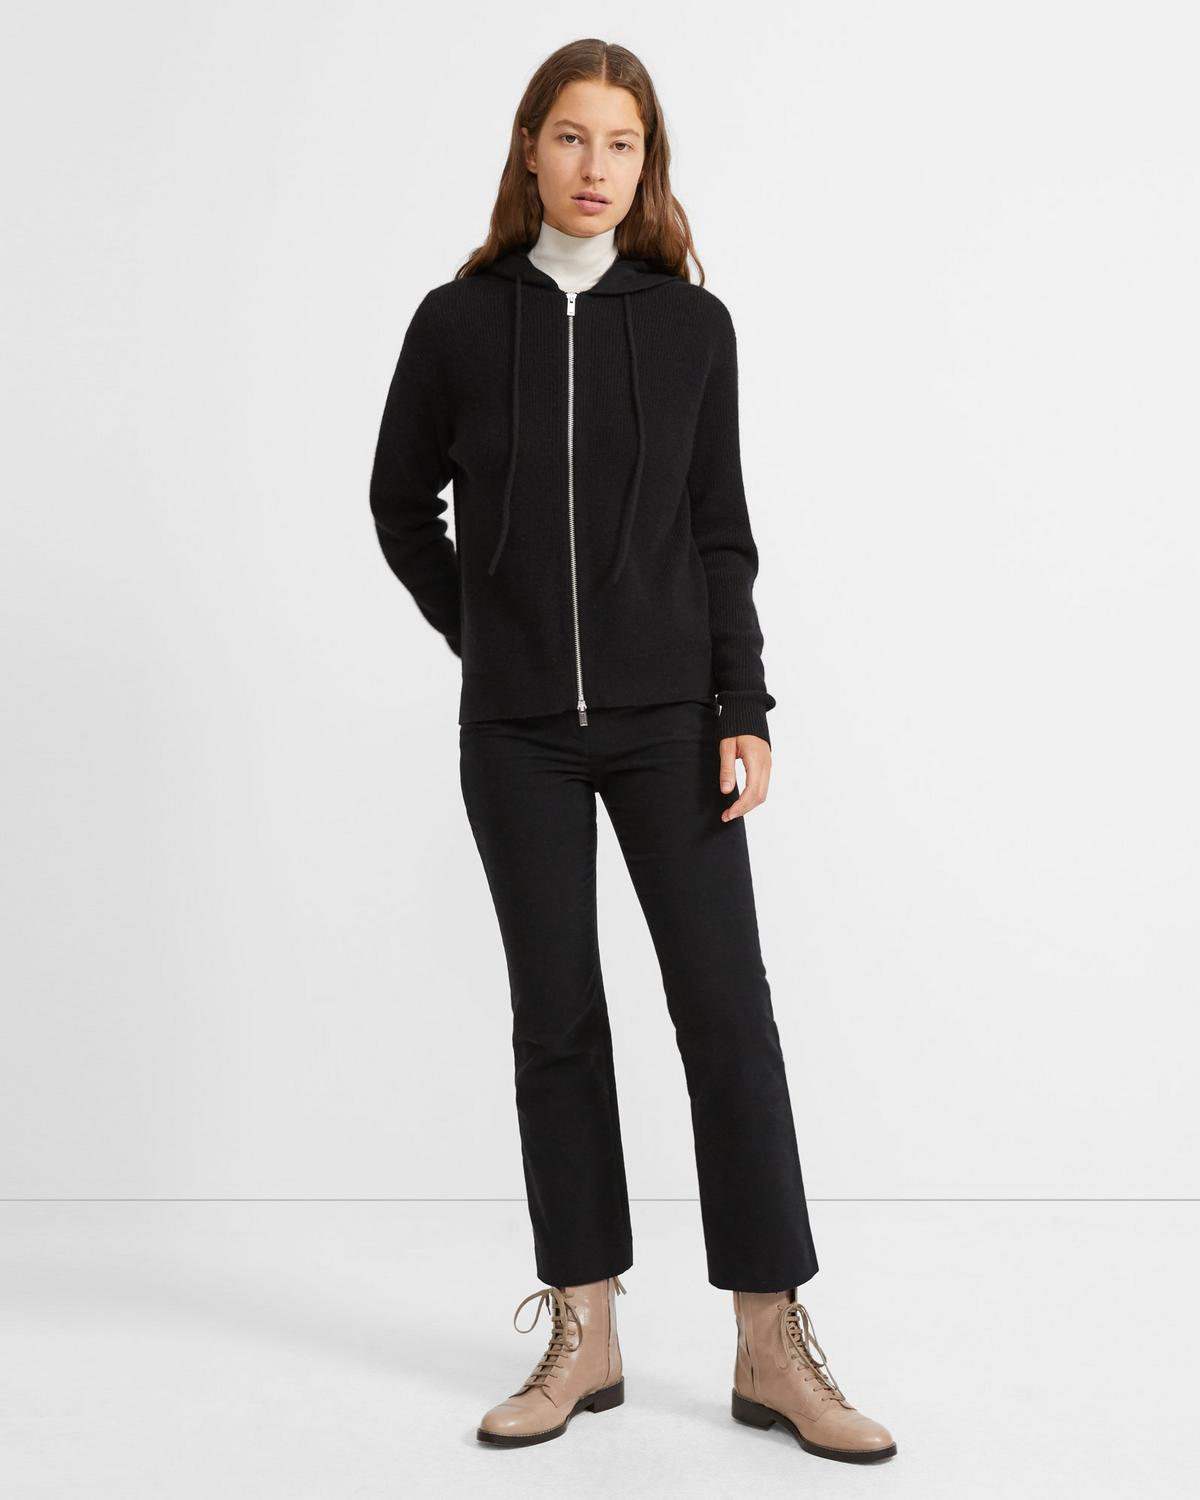 Cashmere Zip Hoodie 0 - click to view larger image